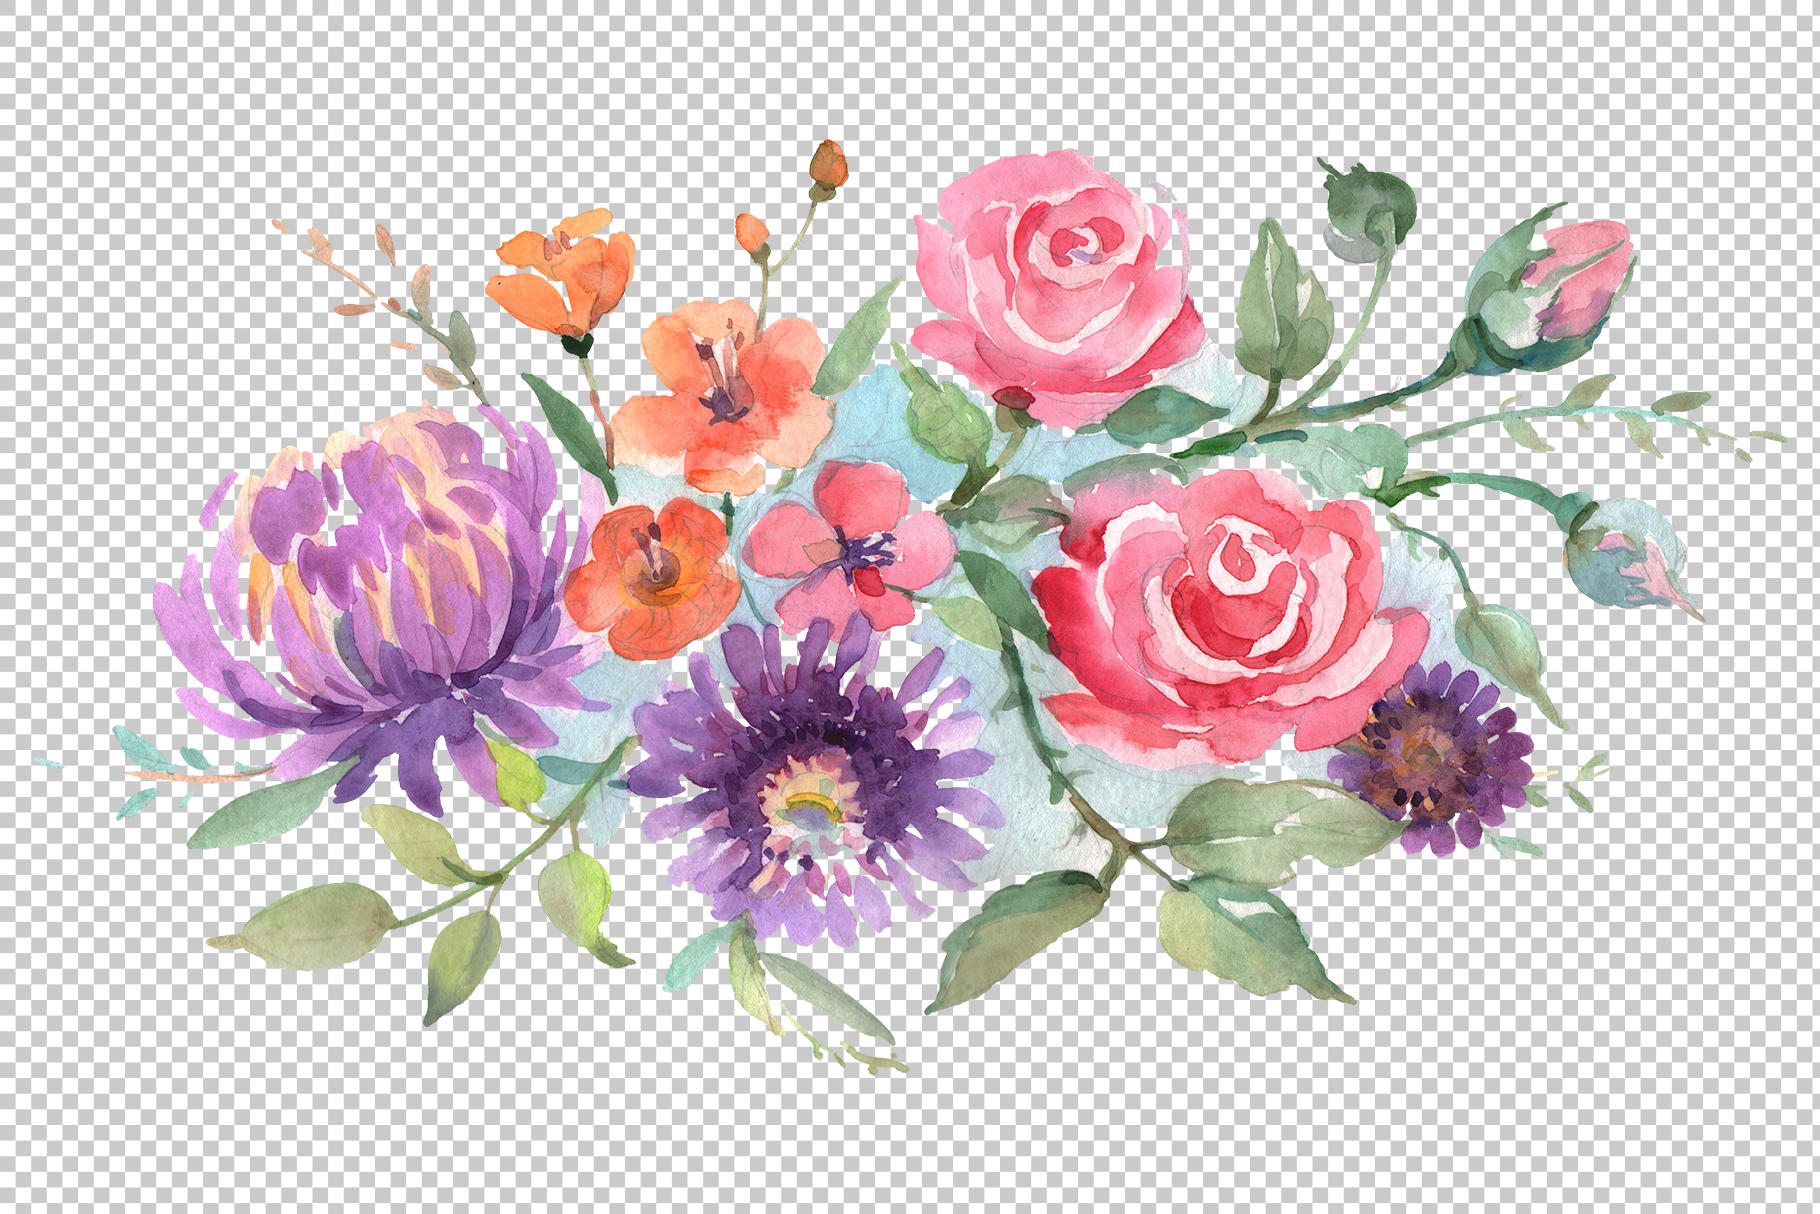 Bouquet with roses and asters Watercolor png example image 2